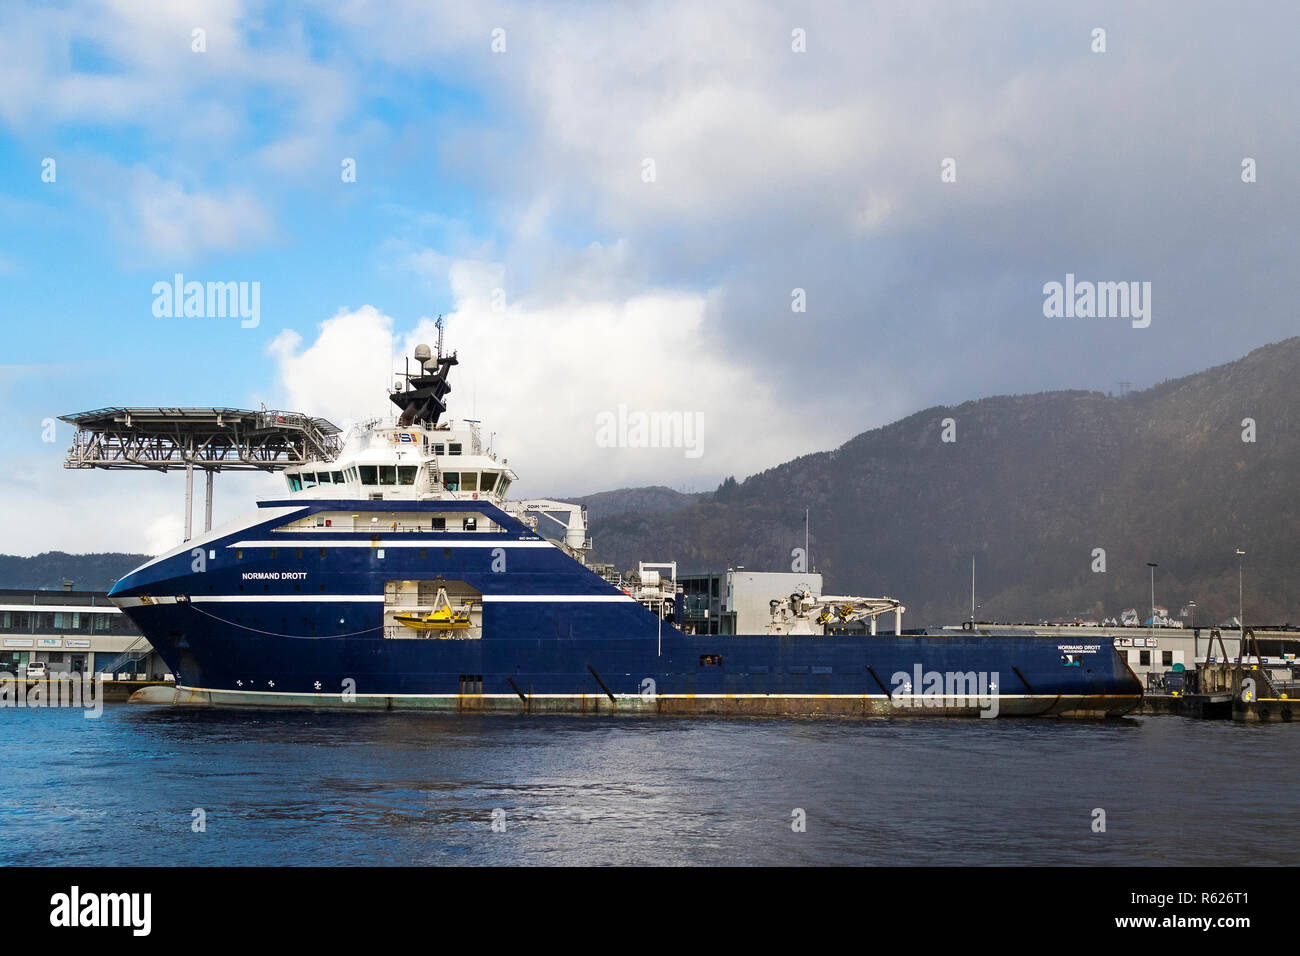 Offshore anchor handling tug supply vessel (AHTS) Normand Drott in the port of Bergen, Norway Stock Photo